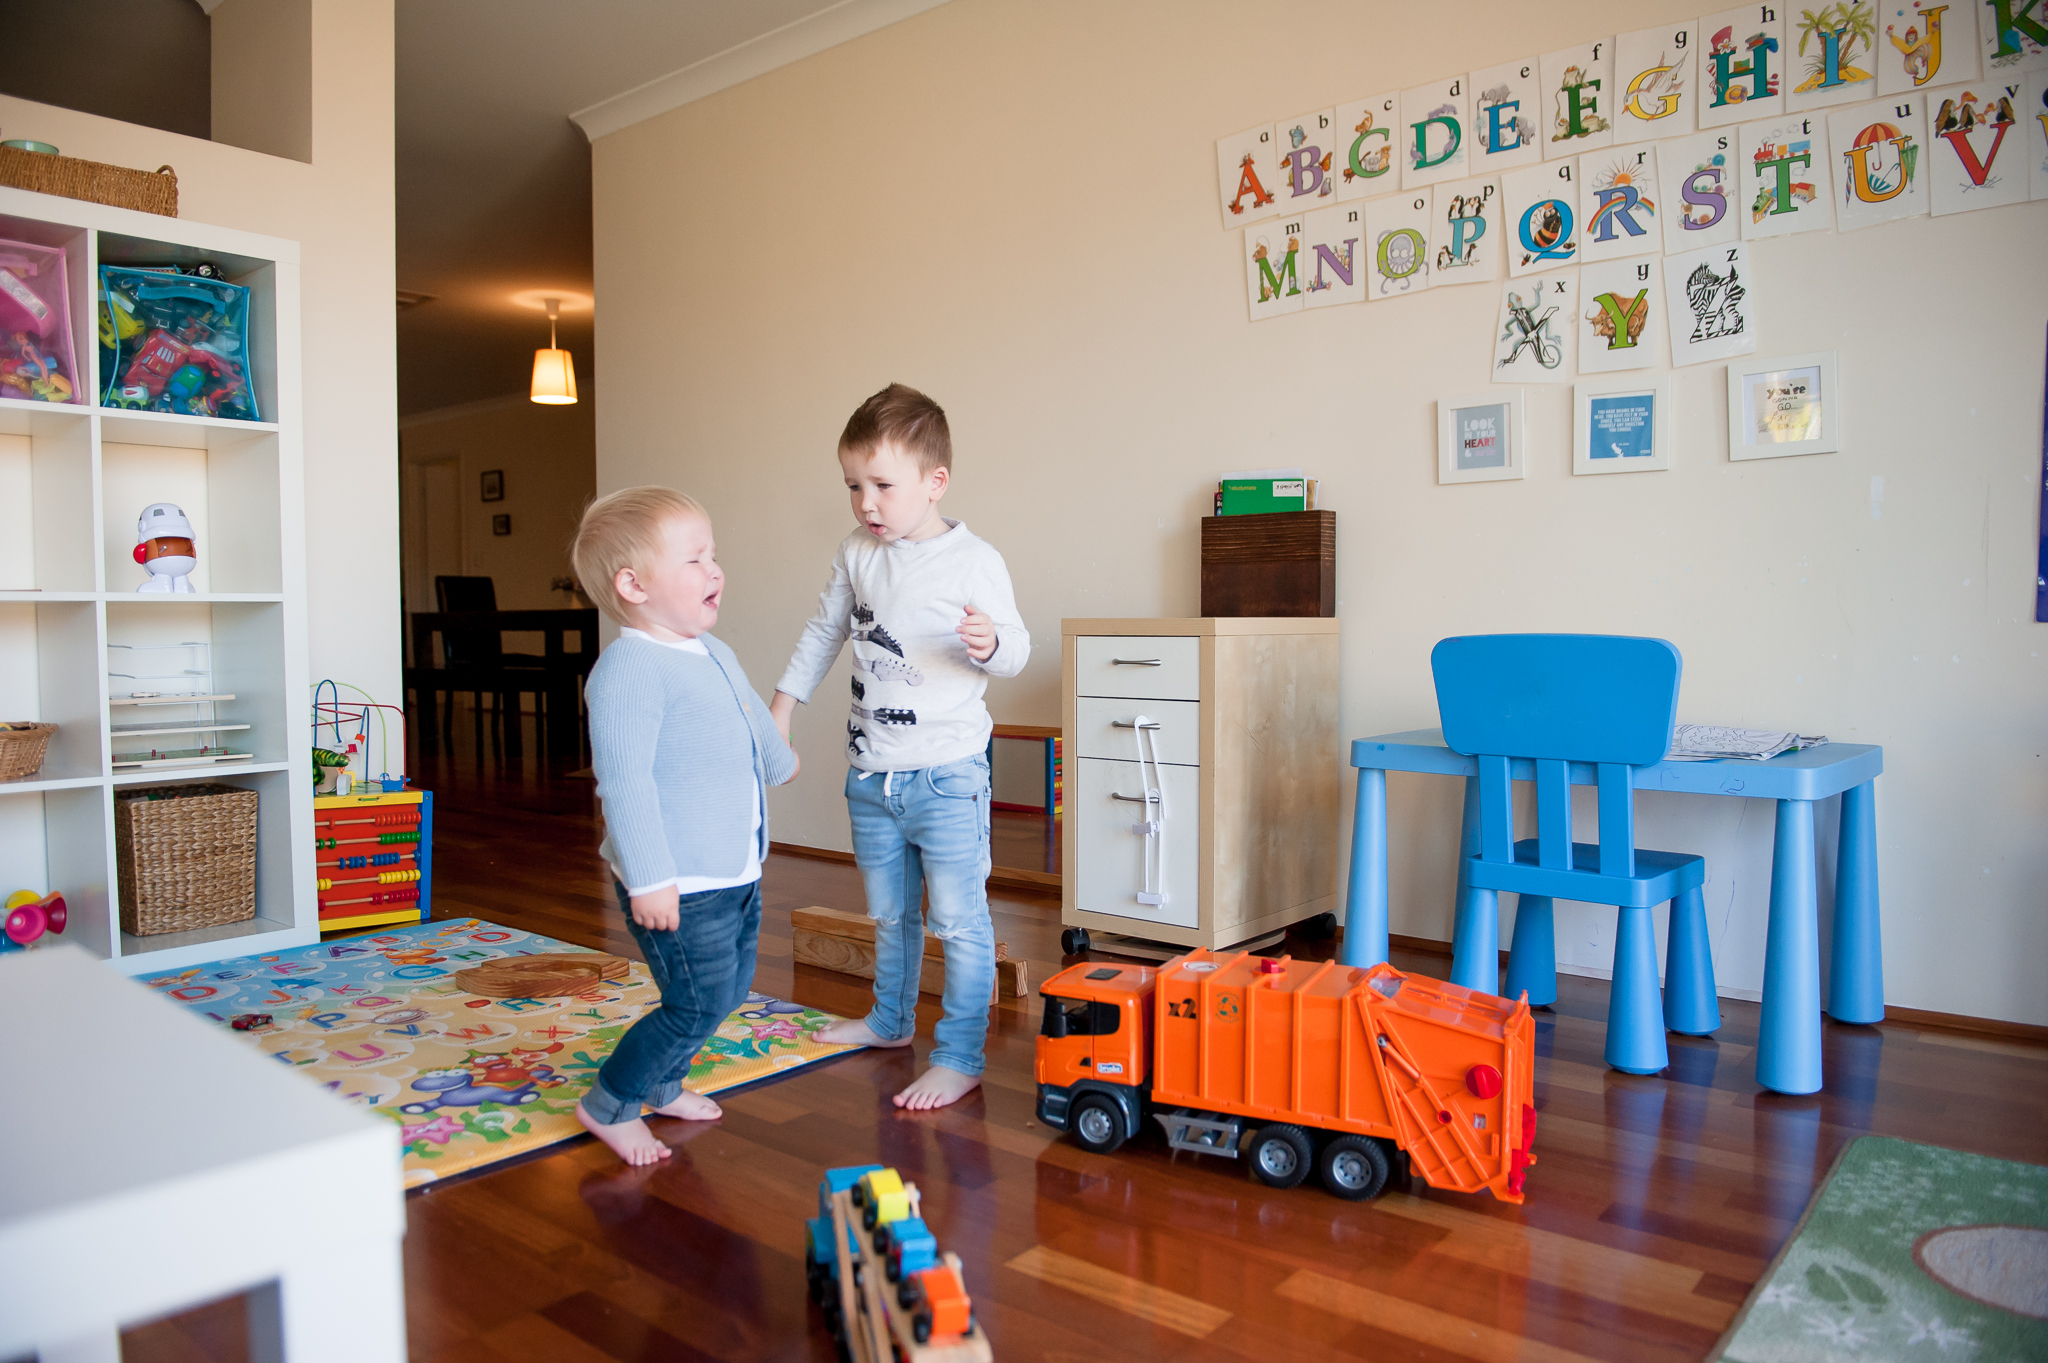 Perth Family Lifestyle Shoot - Finlay 11